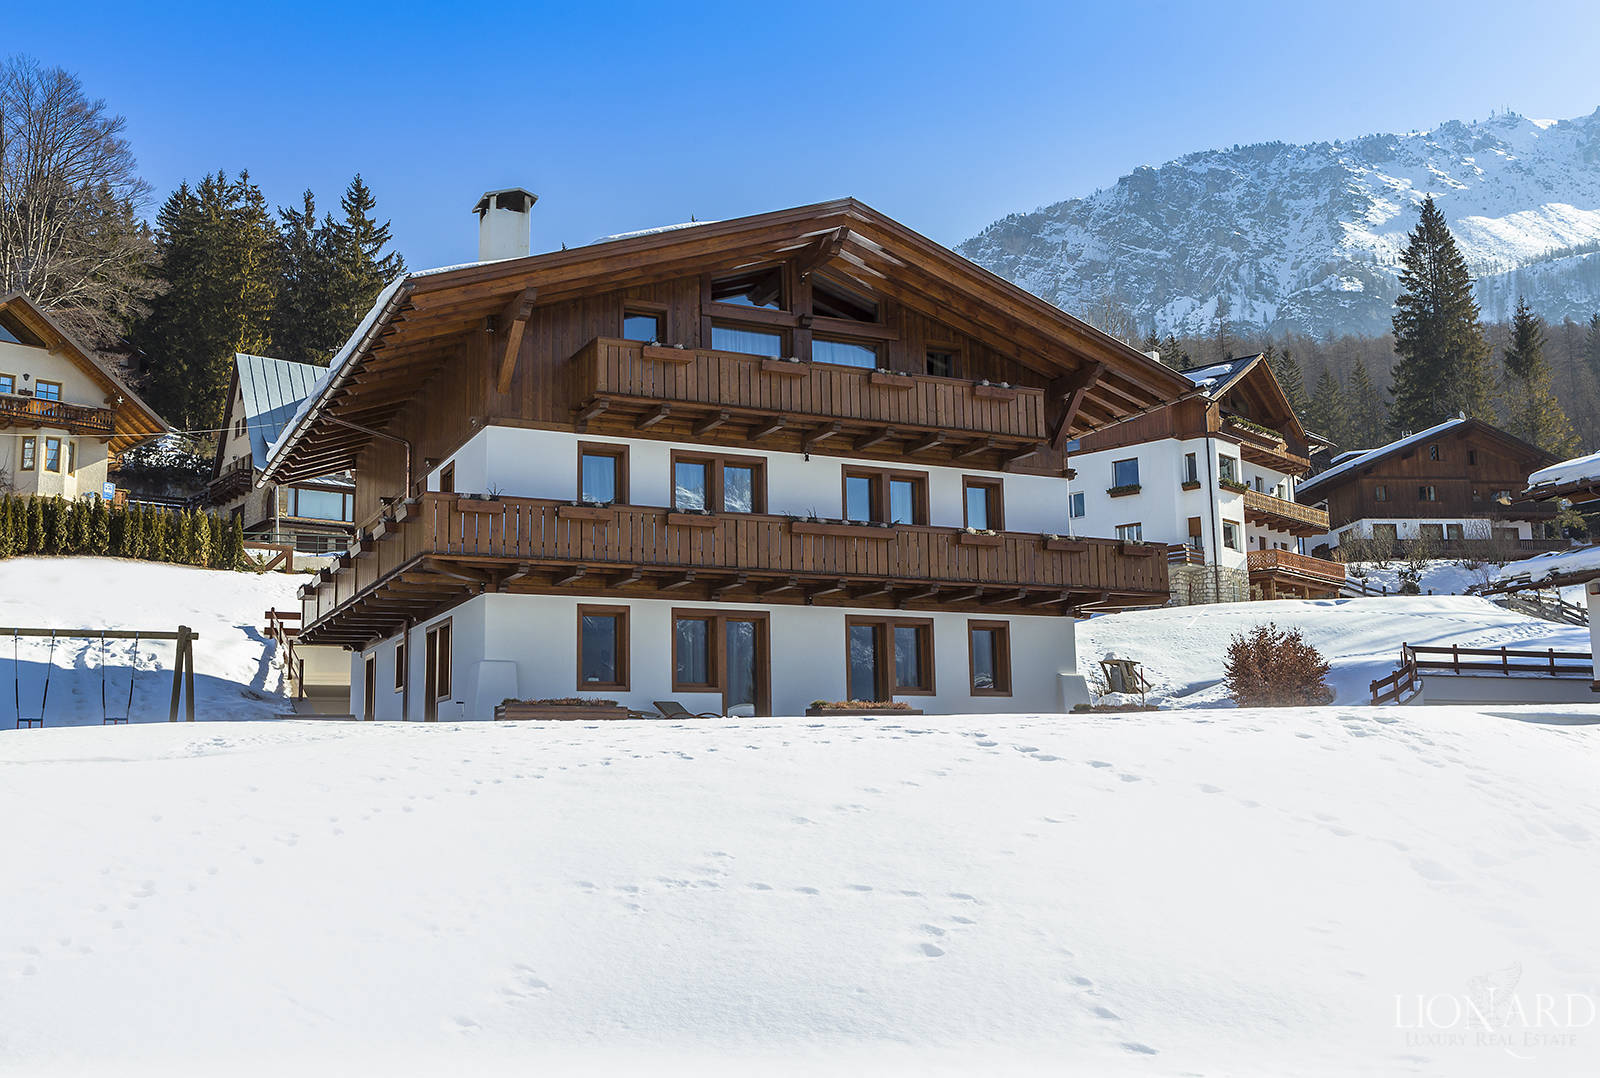 Luxurious mountain chalet in Cortina d'Ampezzo